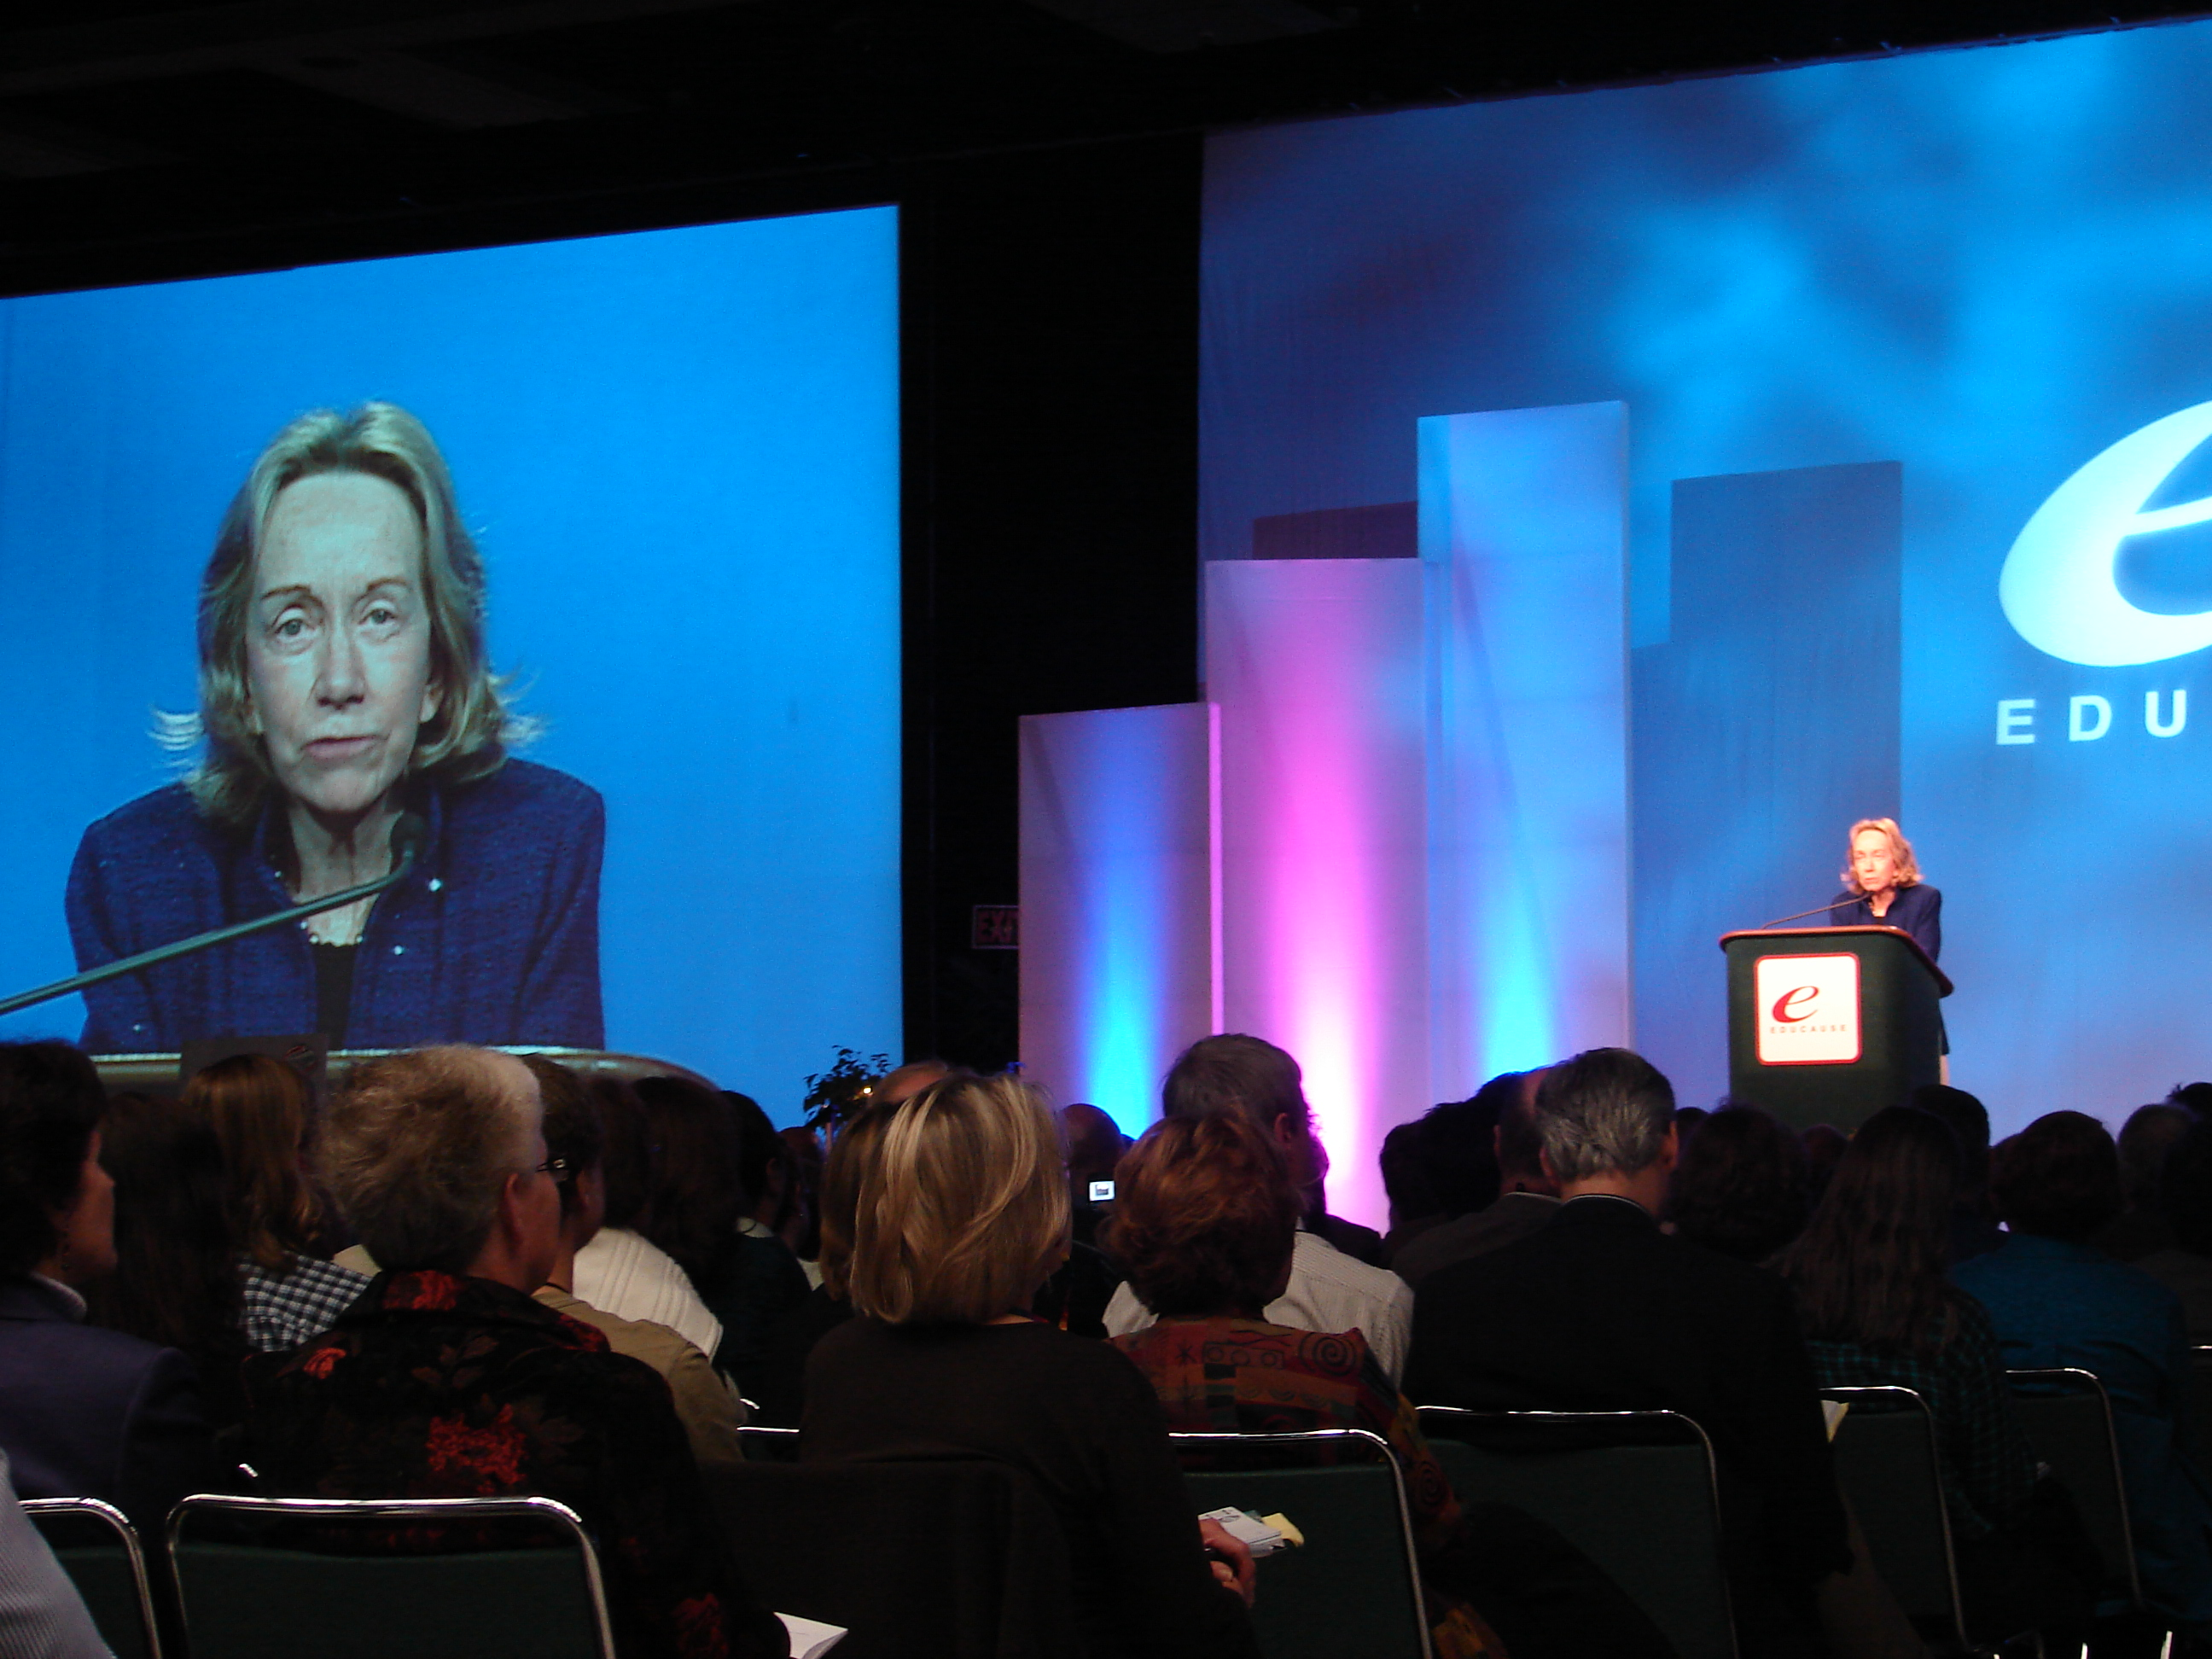 Goodwin speaking at a conference in 2006